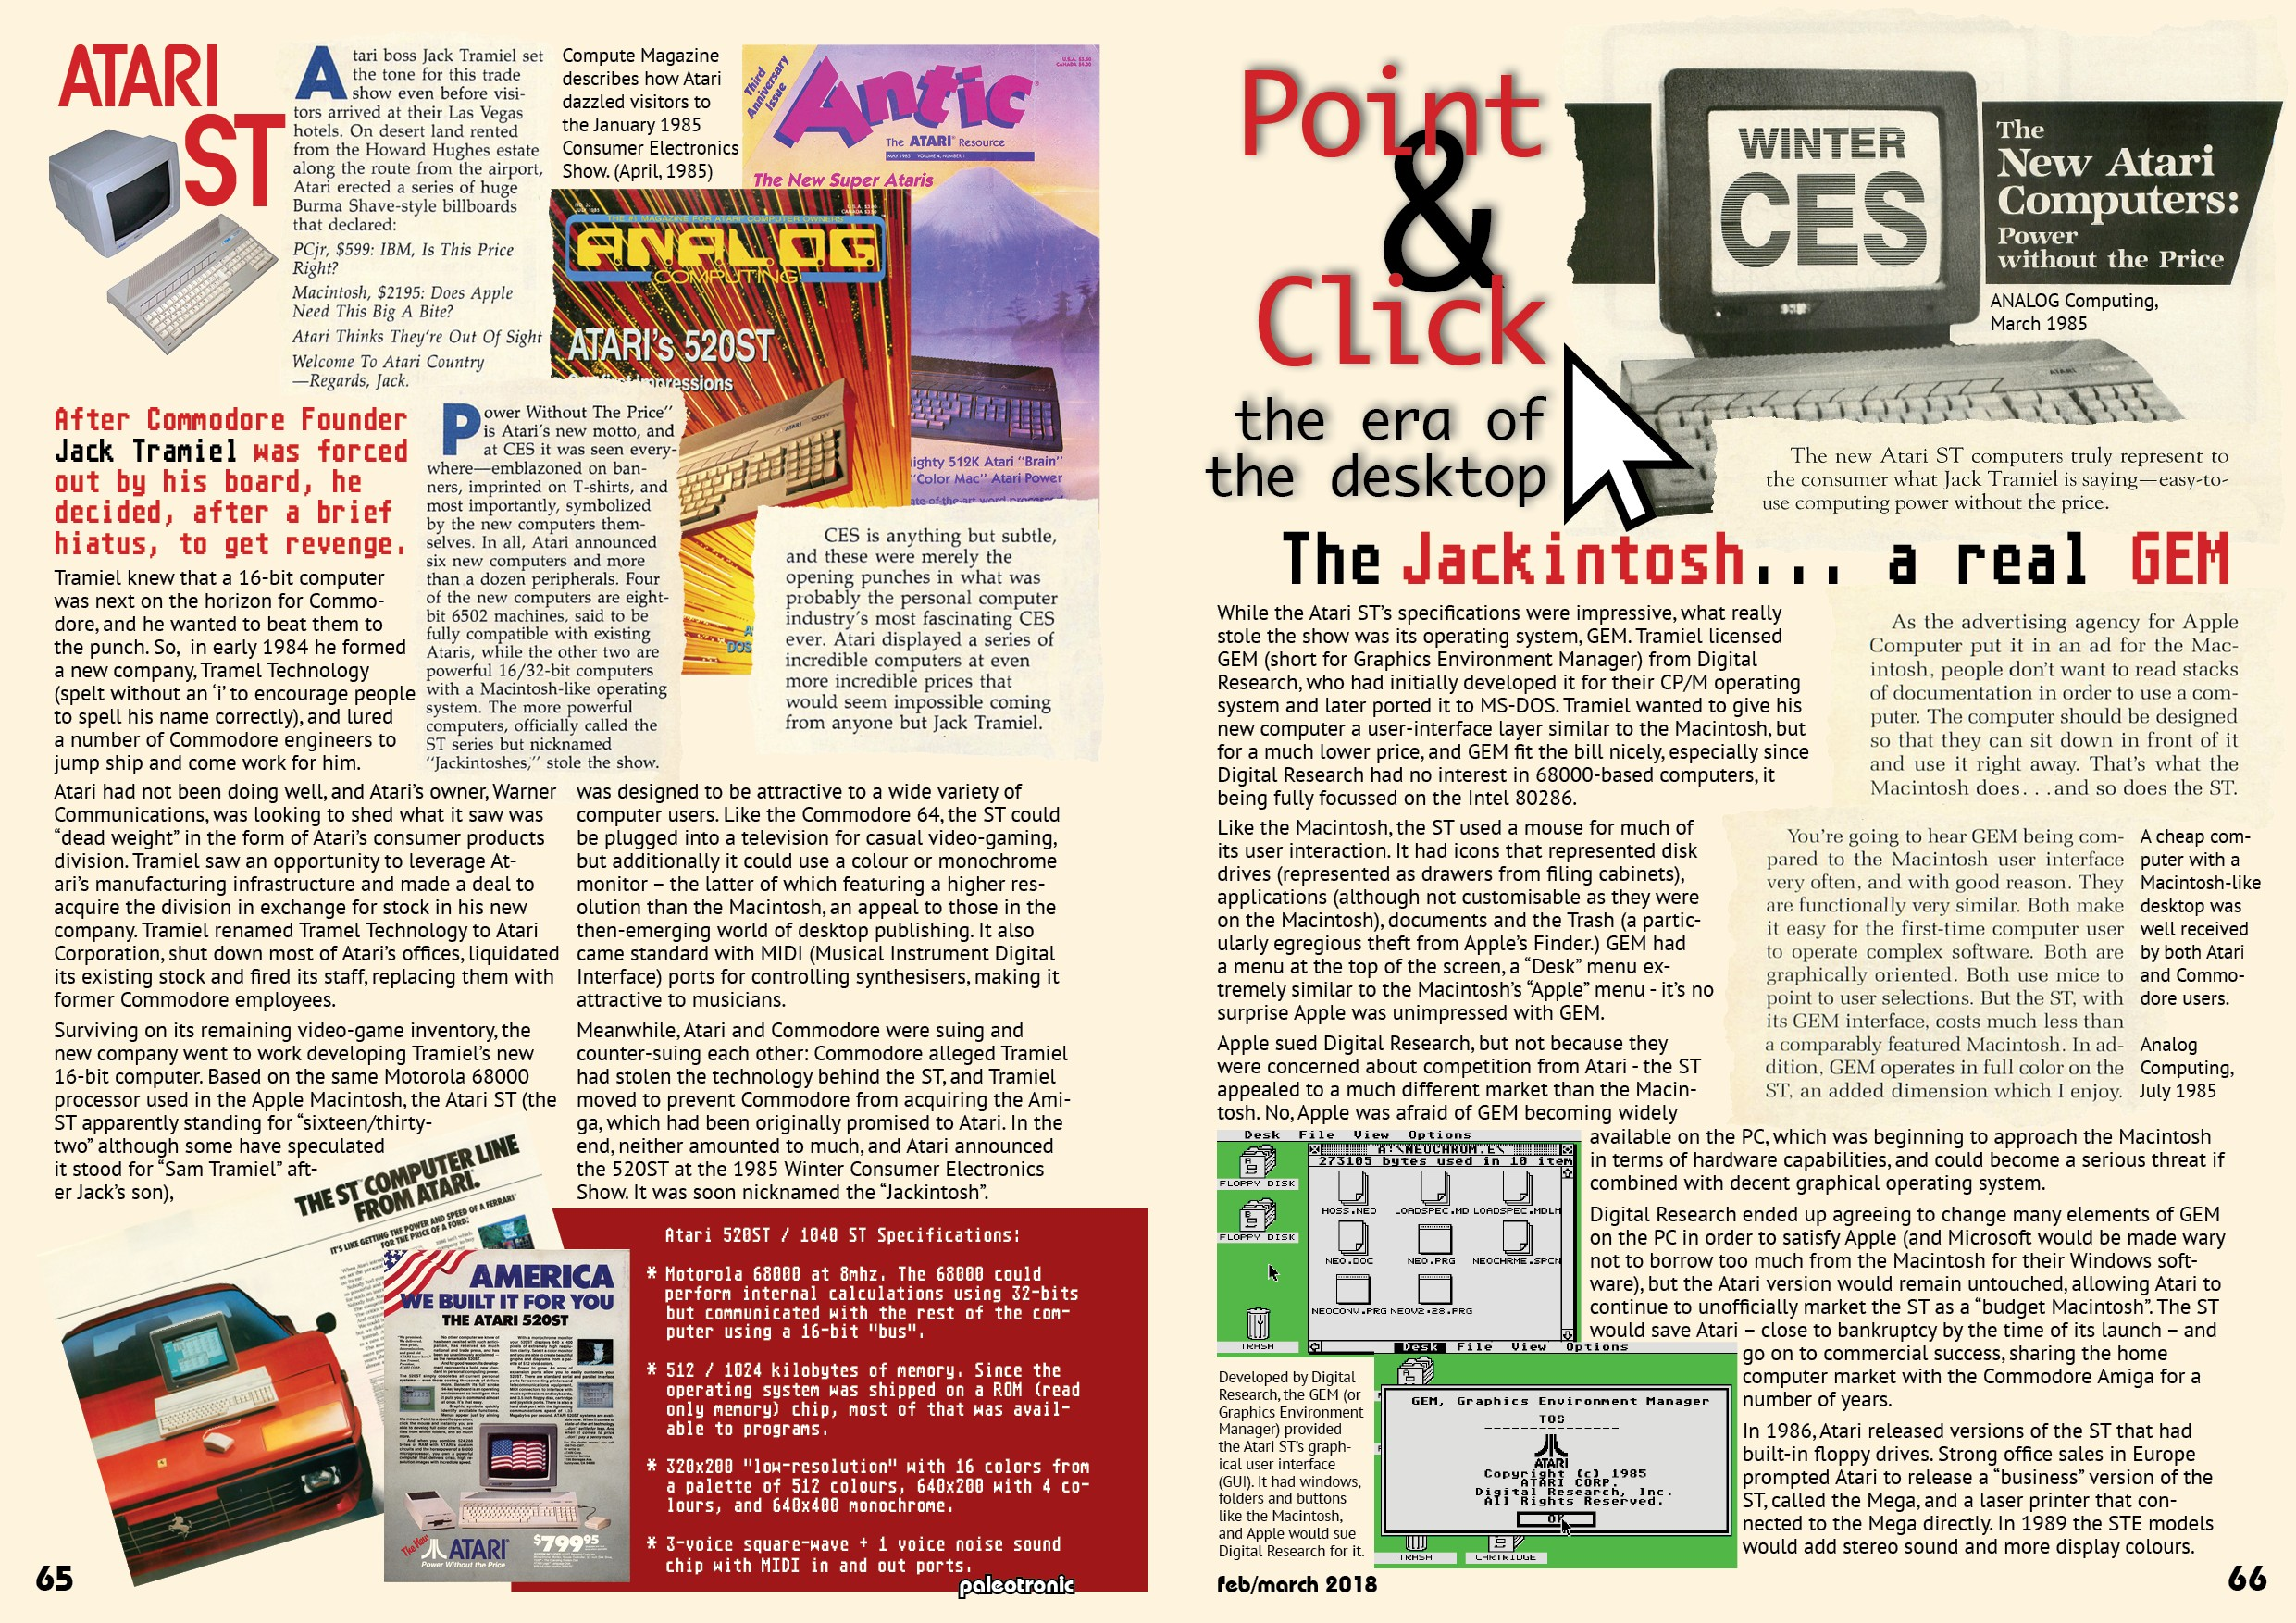 The Jackintosh: A Real GEM – Remembering the Atari ST - Paleotronic